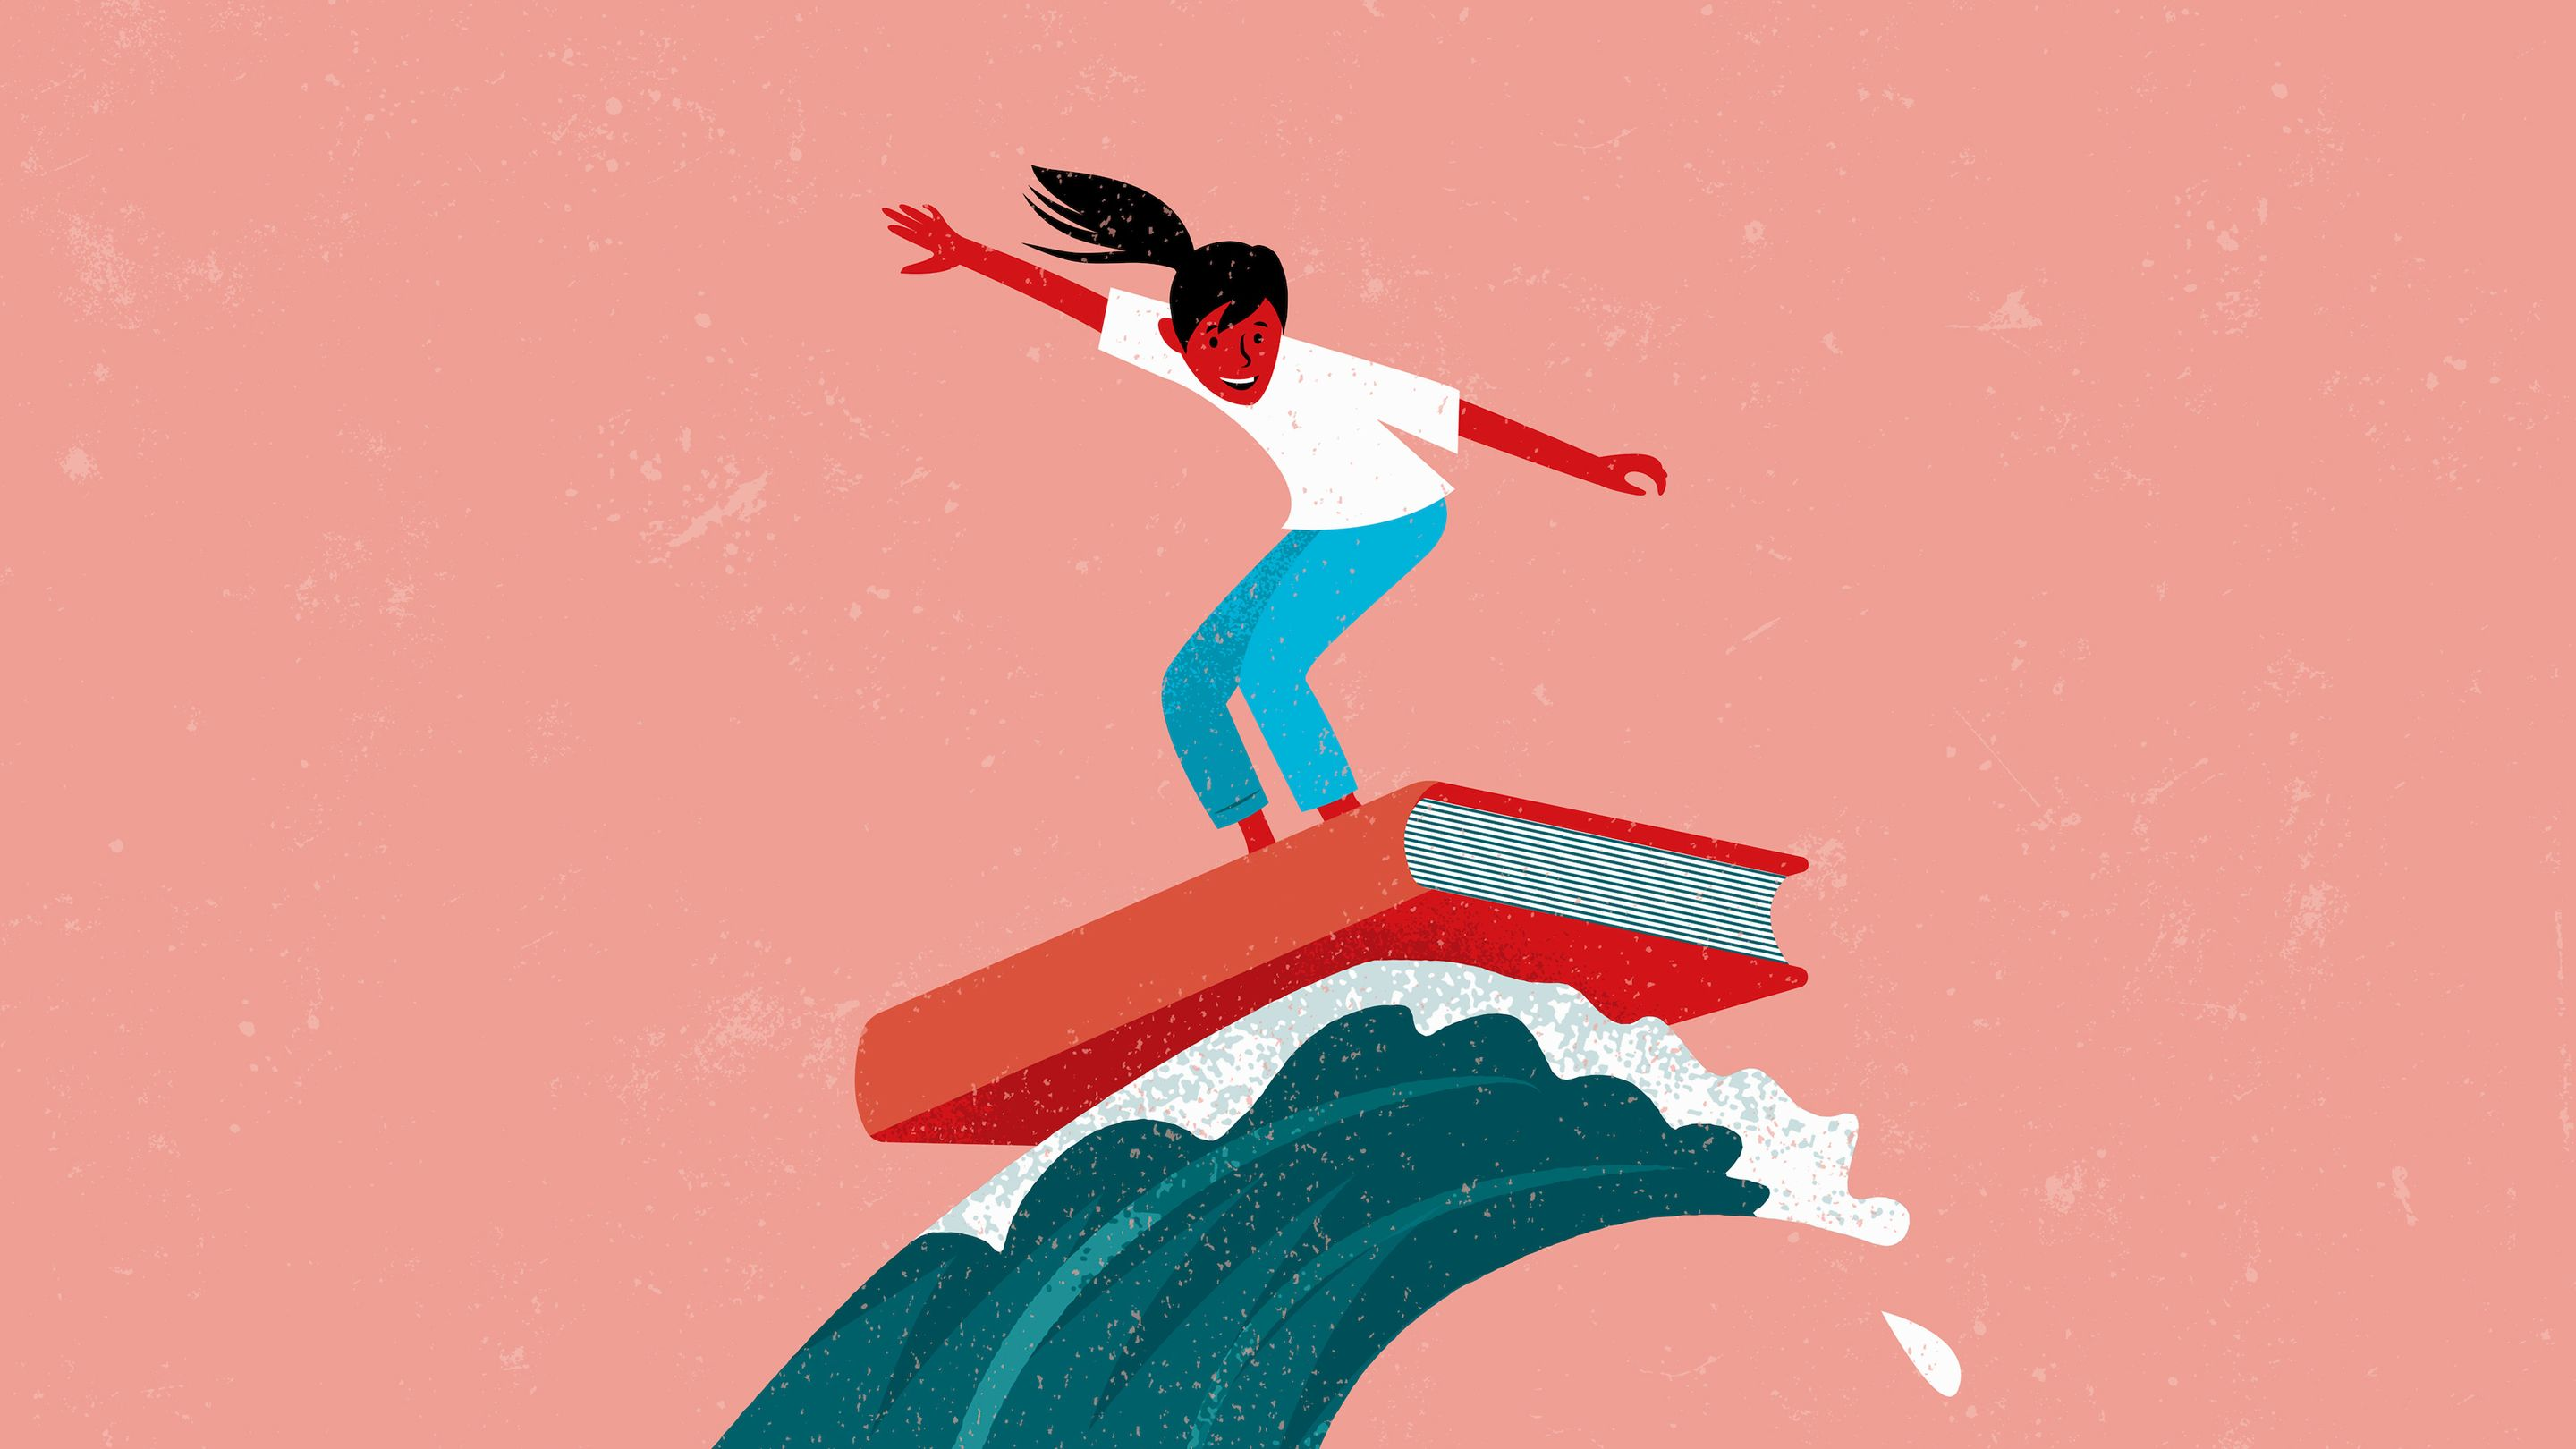 An illustration of a student surfing a wave on top of a book